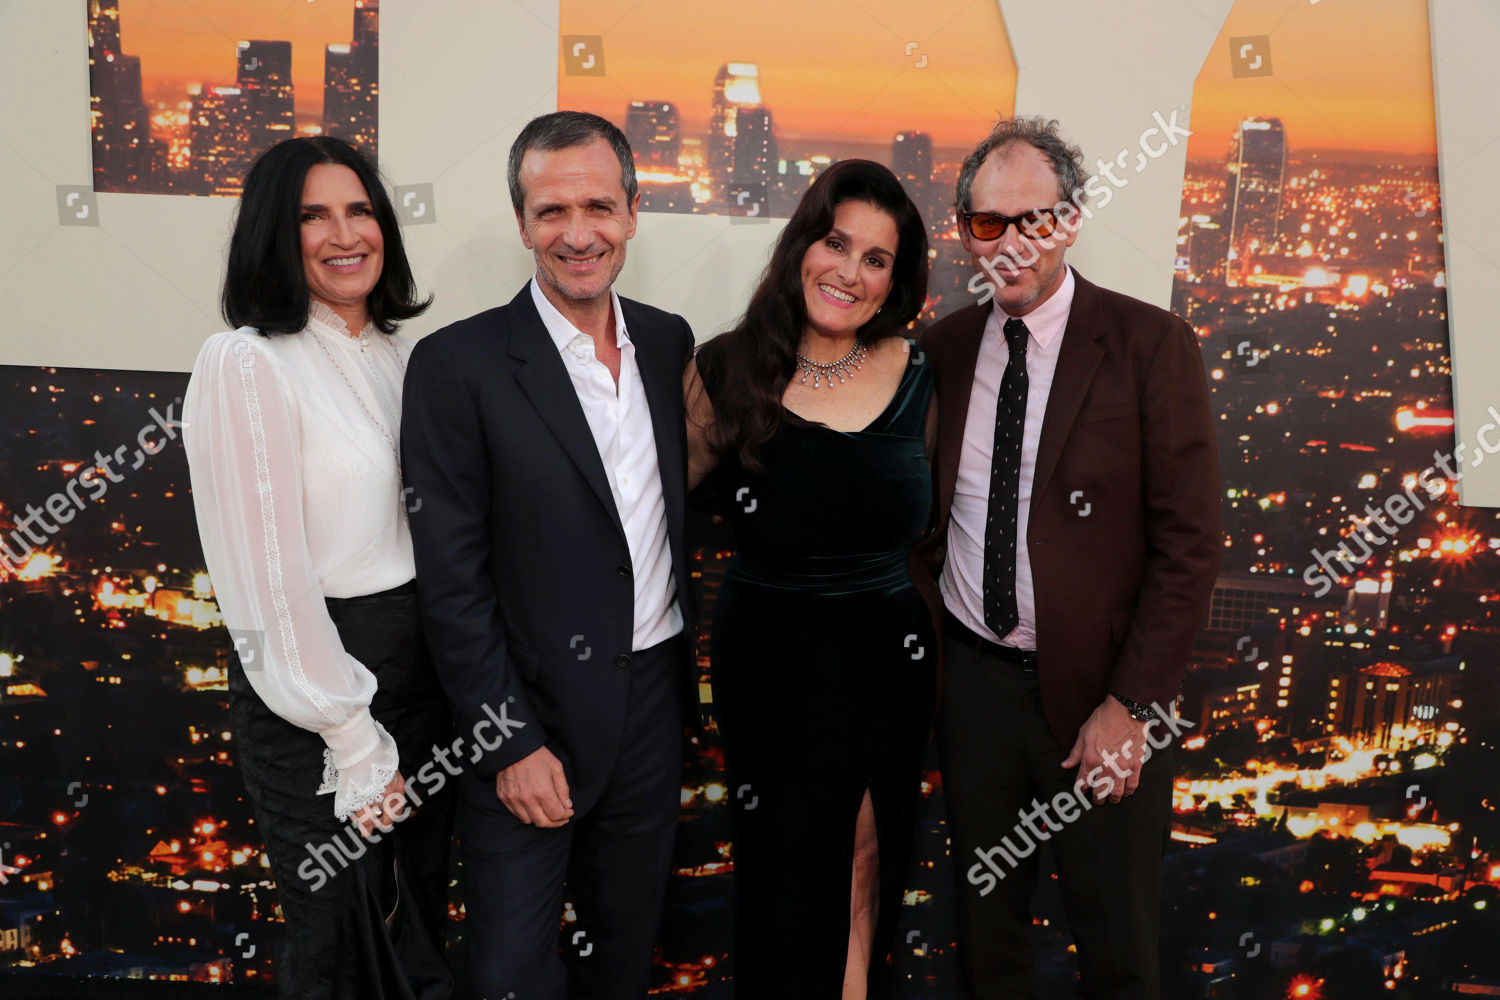 Once Upon A Time At Christmas 2019.Georgia Kacandes Executive Producer David Heyman Producer